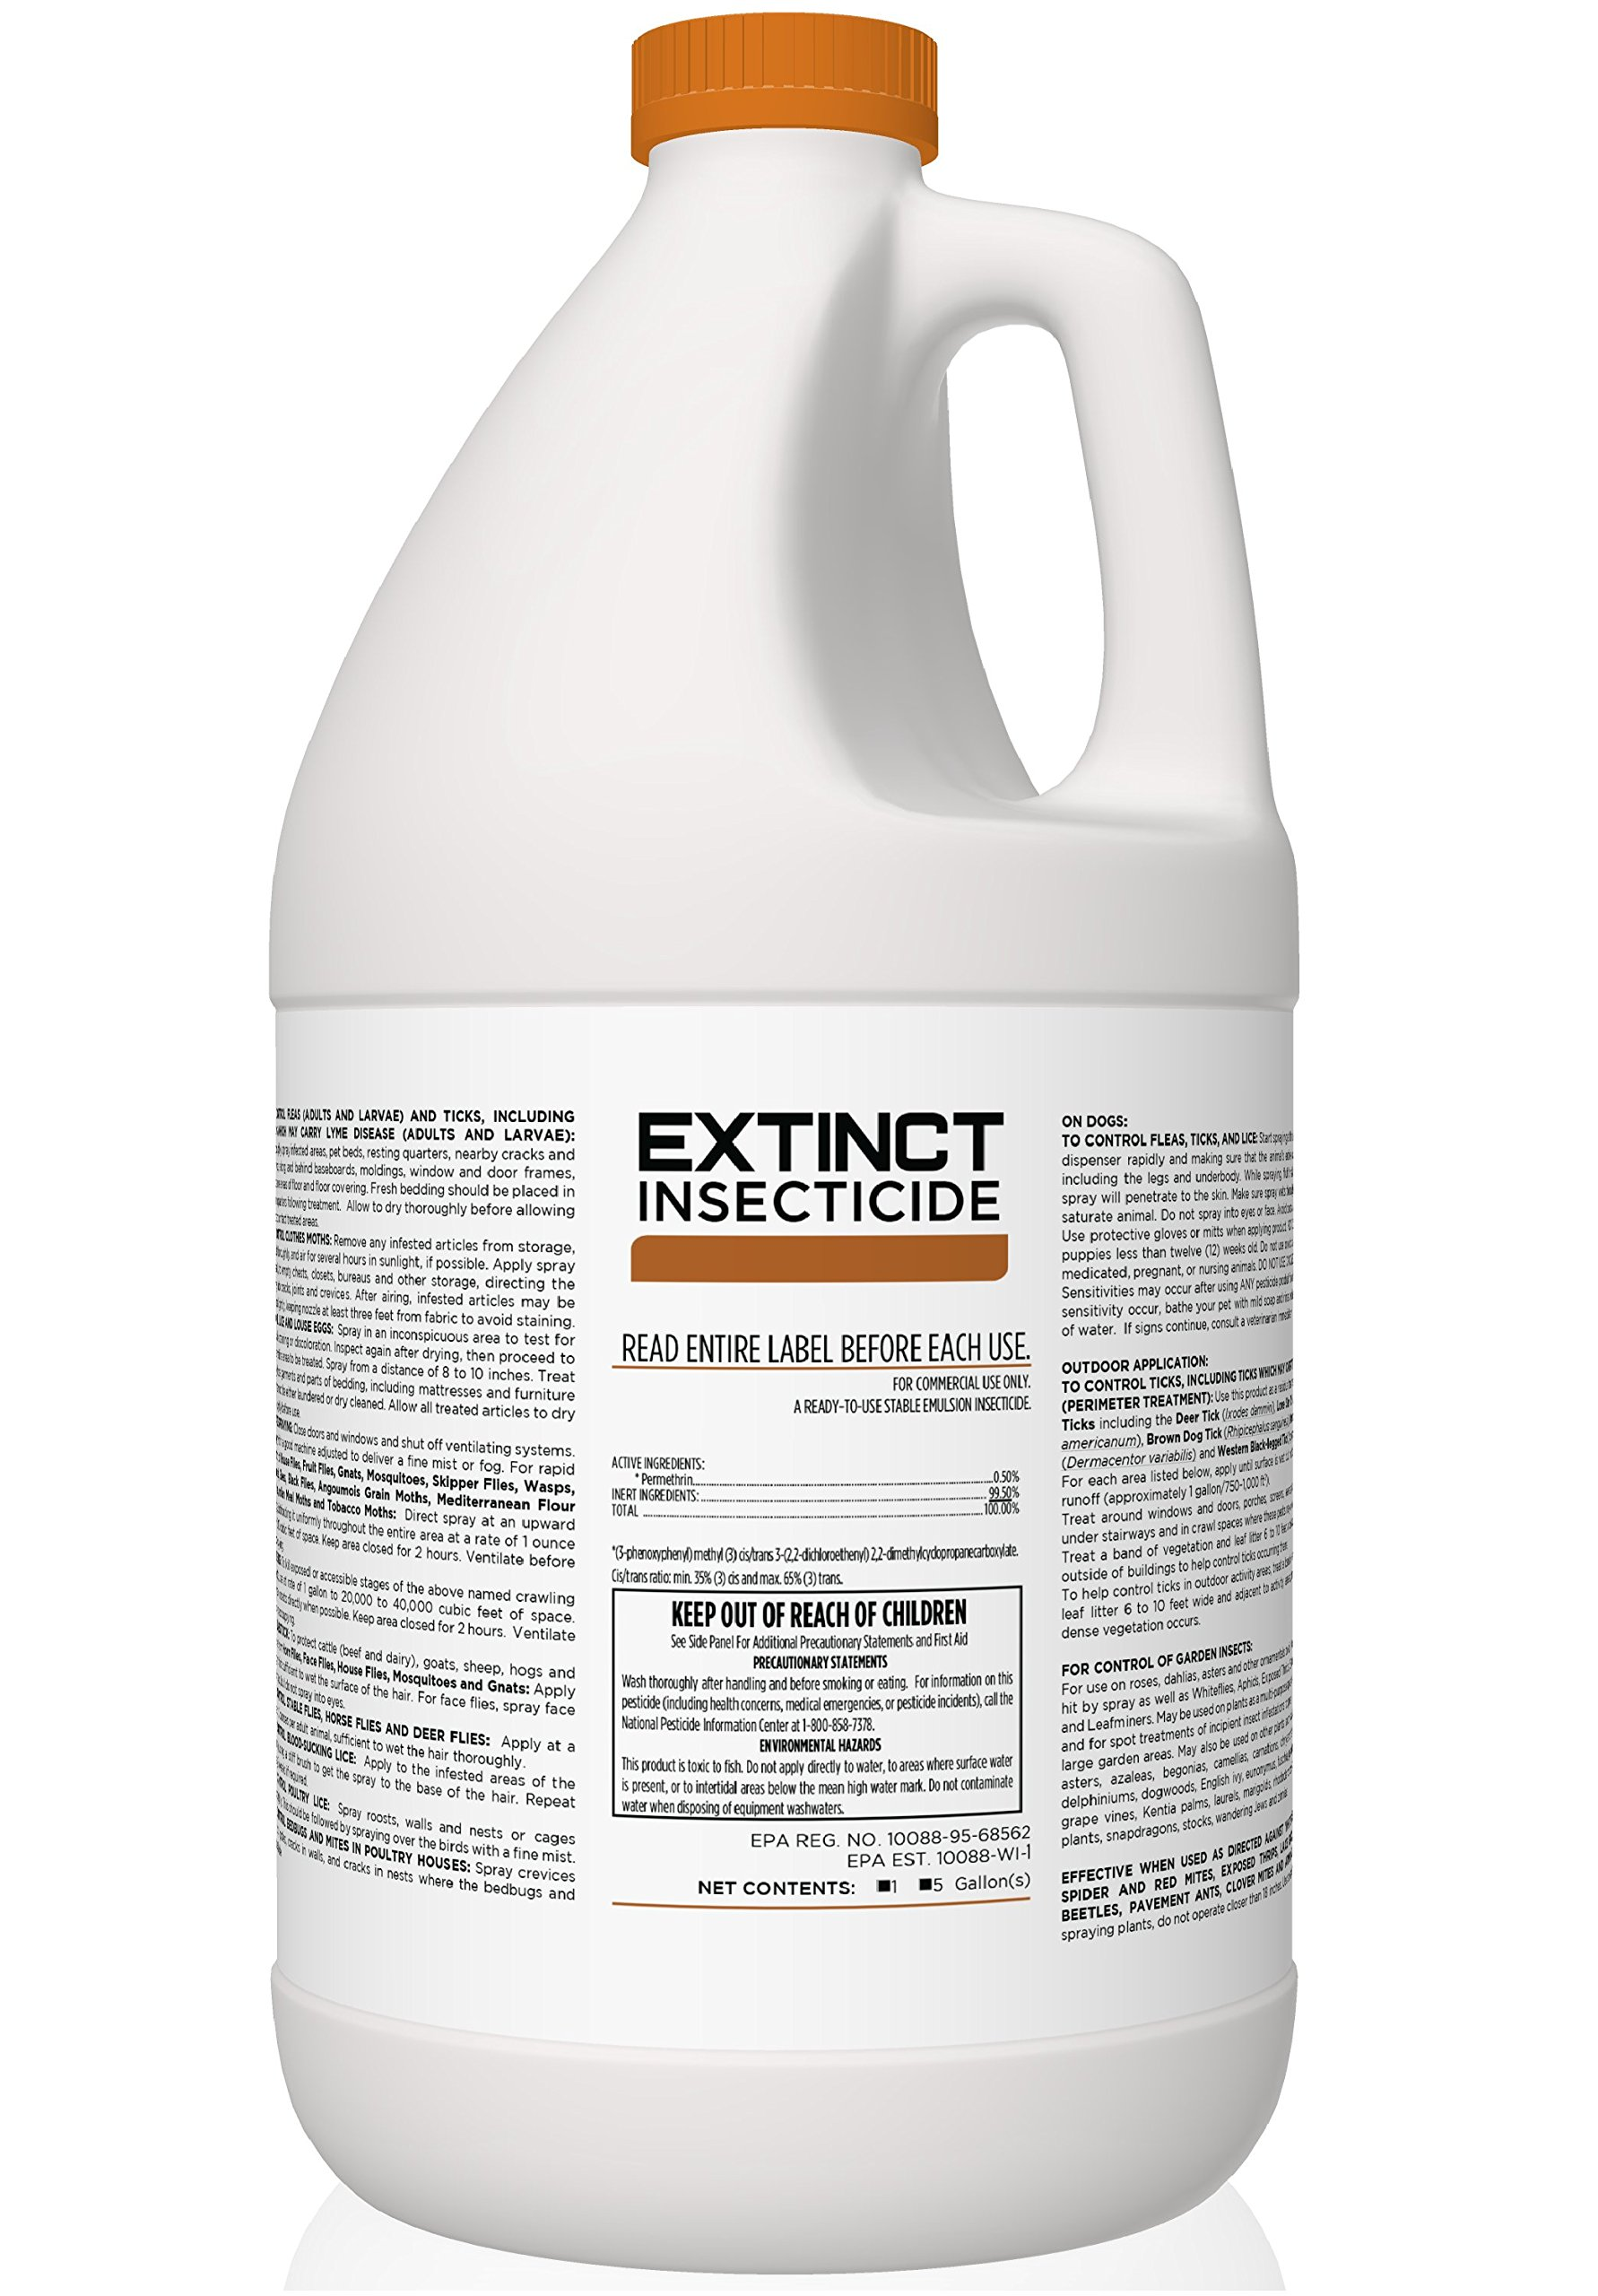 LONG LASTING LIQUID INSECTICIDE FOR INDOOR & OUTDOOR USE | SAFE INSECTICIDE | PERMETHRIN INSECT KILLER | BEDBUG KILLER | DOG & CATTLE INSECTICIDE | LIVESTOCK INSECT KILLER & MORE!